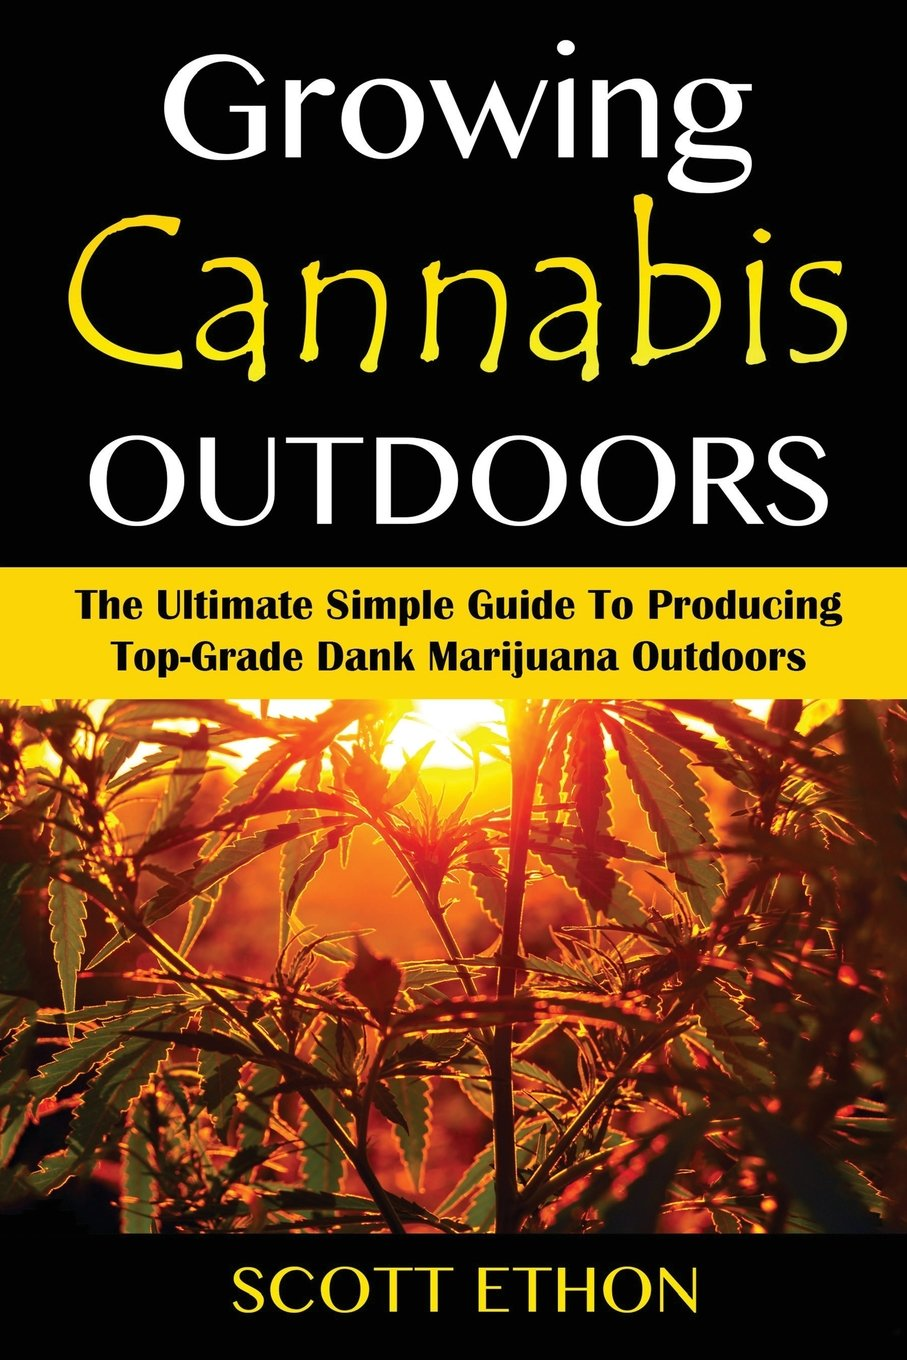 Cannabis: Growing Cannabis Outdoors: The Ultimate Simple Guide To Producing Top-Grade Dank Marijuana Outdoors